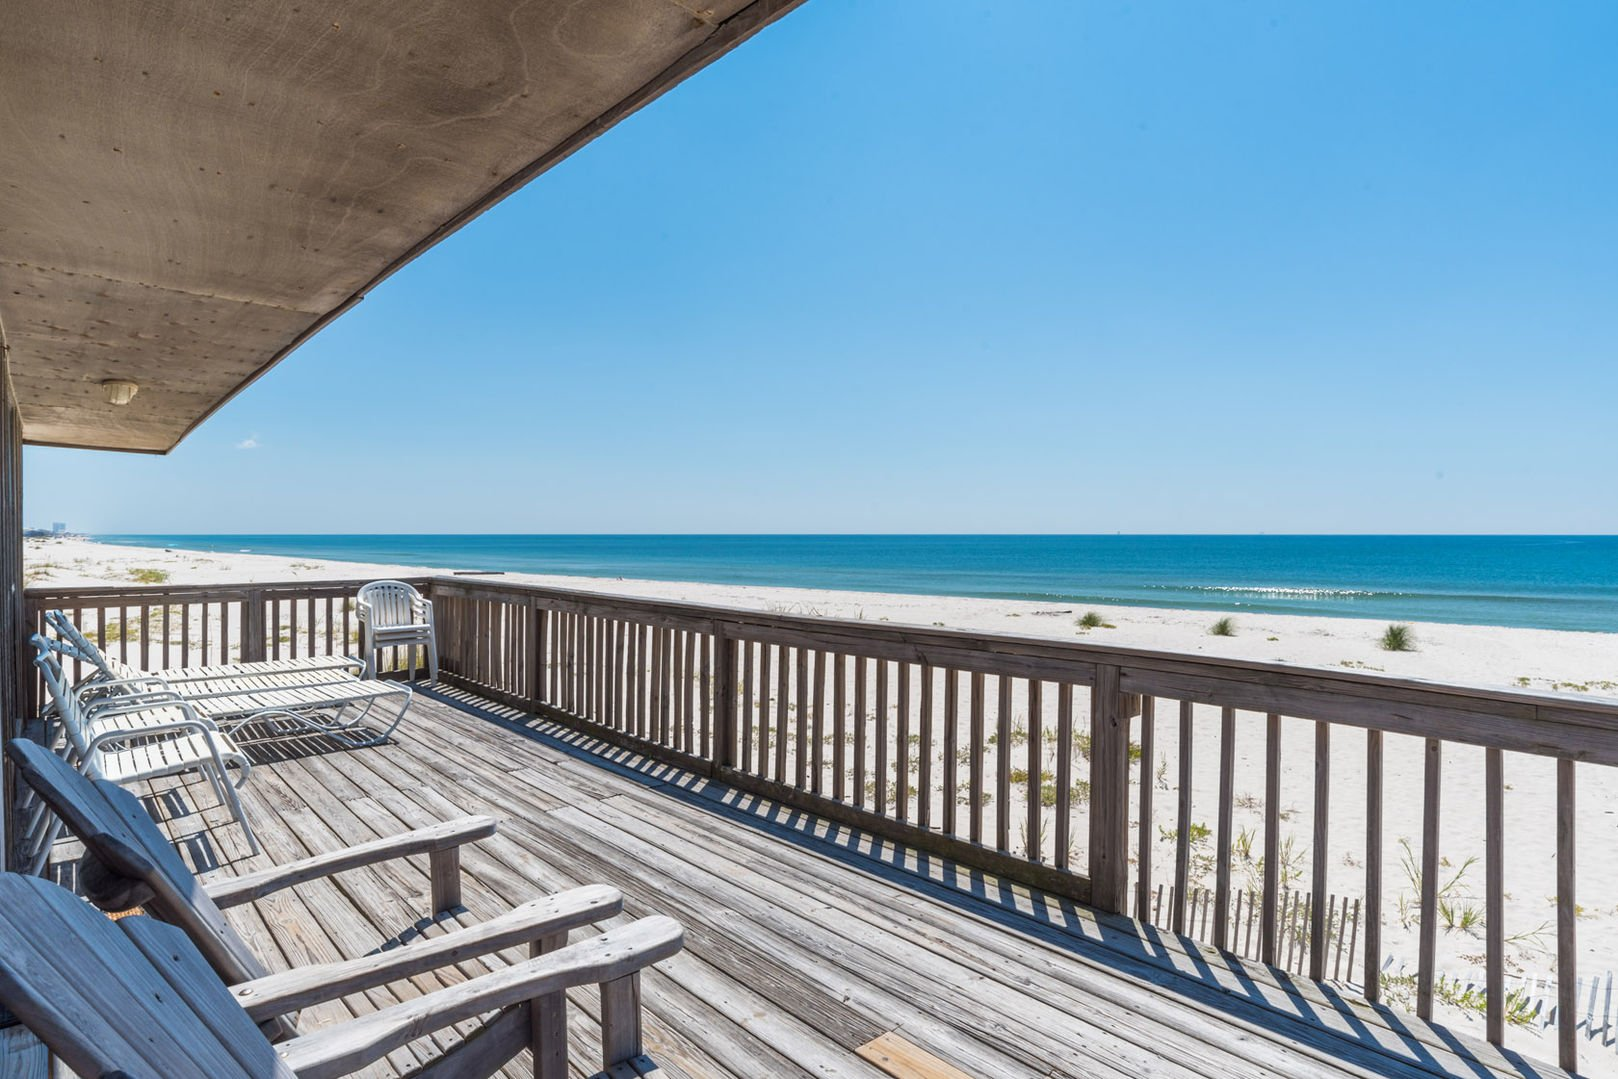 Enjoy Being Very Secluded On this Beach House Rental in Gulf Shores Beach Front Deck